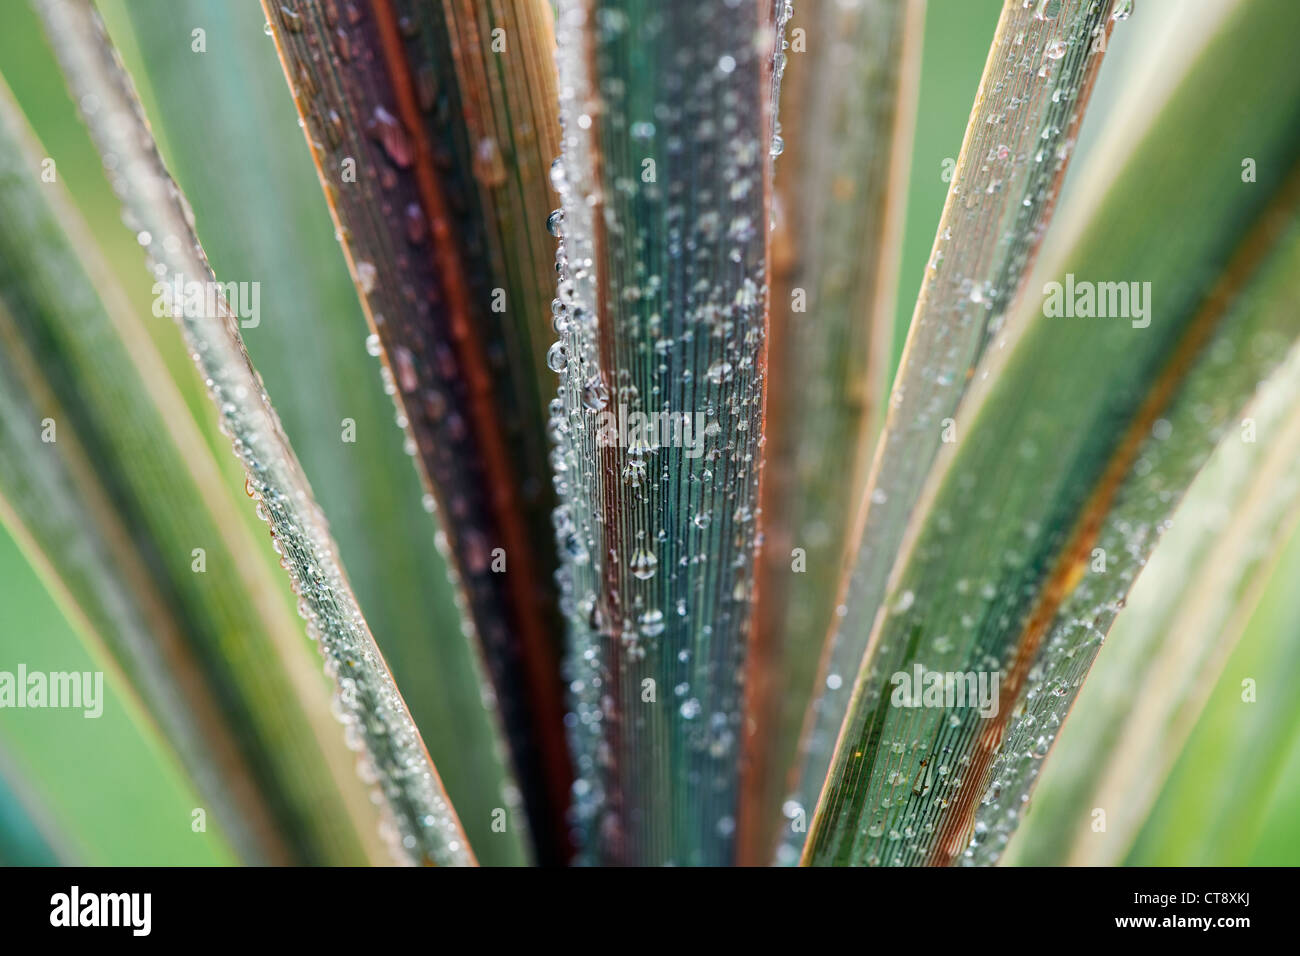 Cordyline australis 'Sundance', Cordyline, Close up of leaves with frost. Stock Photo